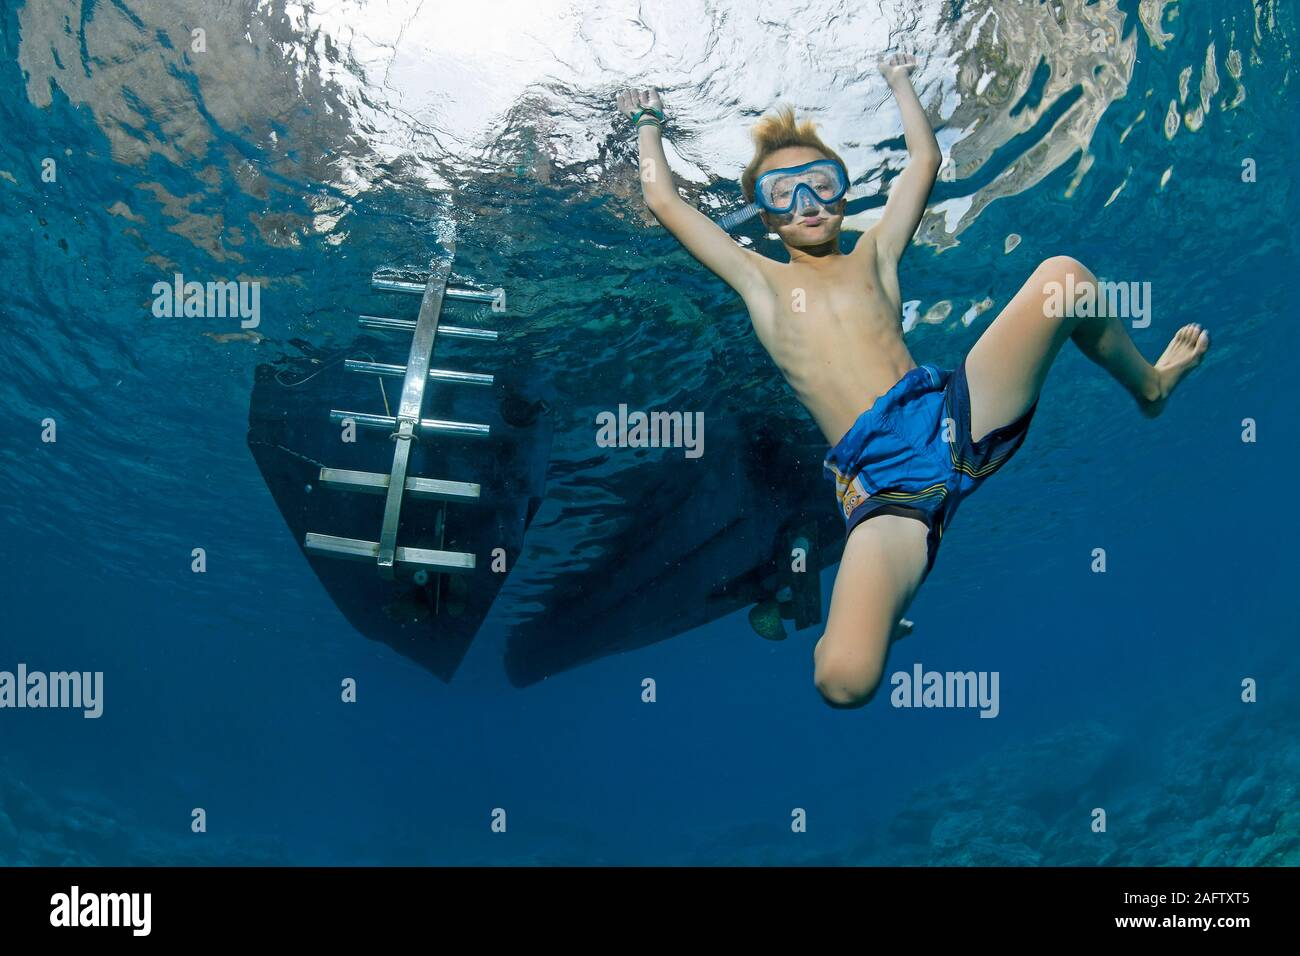 Child playful in warm Mediterranean sea, diving, Zakynthos island, Greece Stock Photo